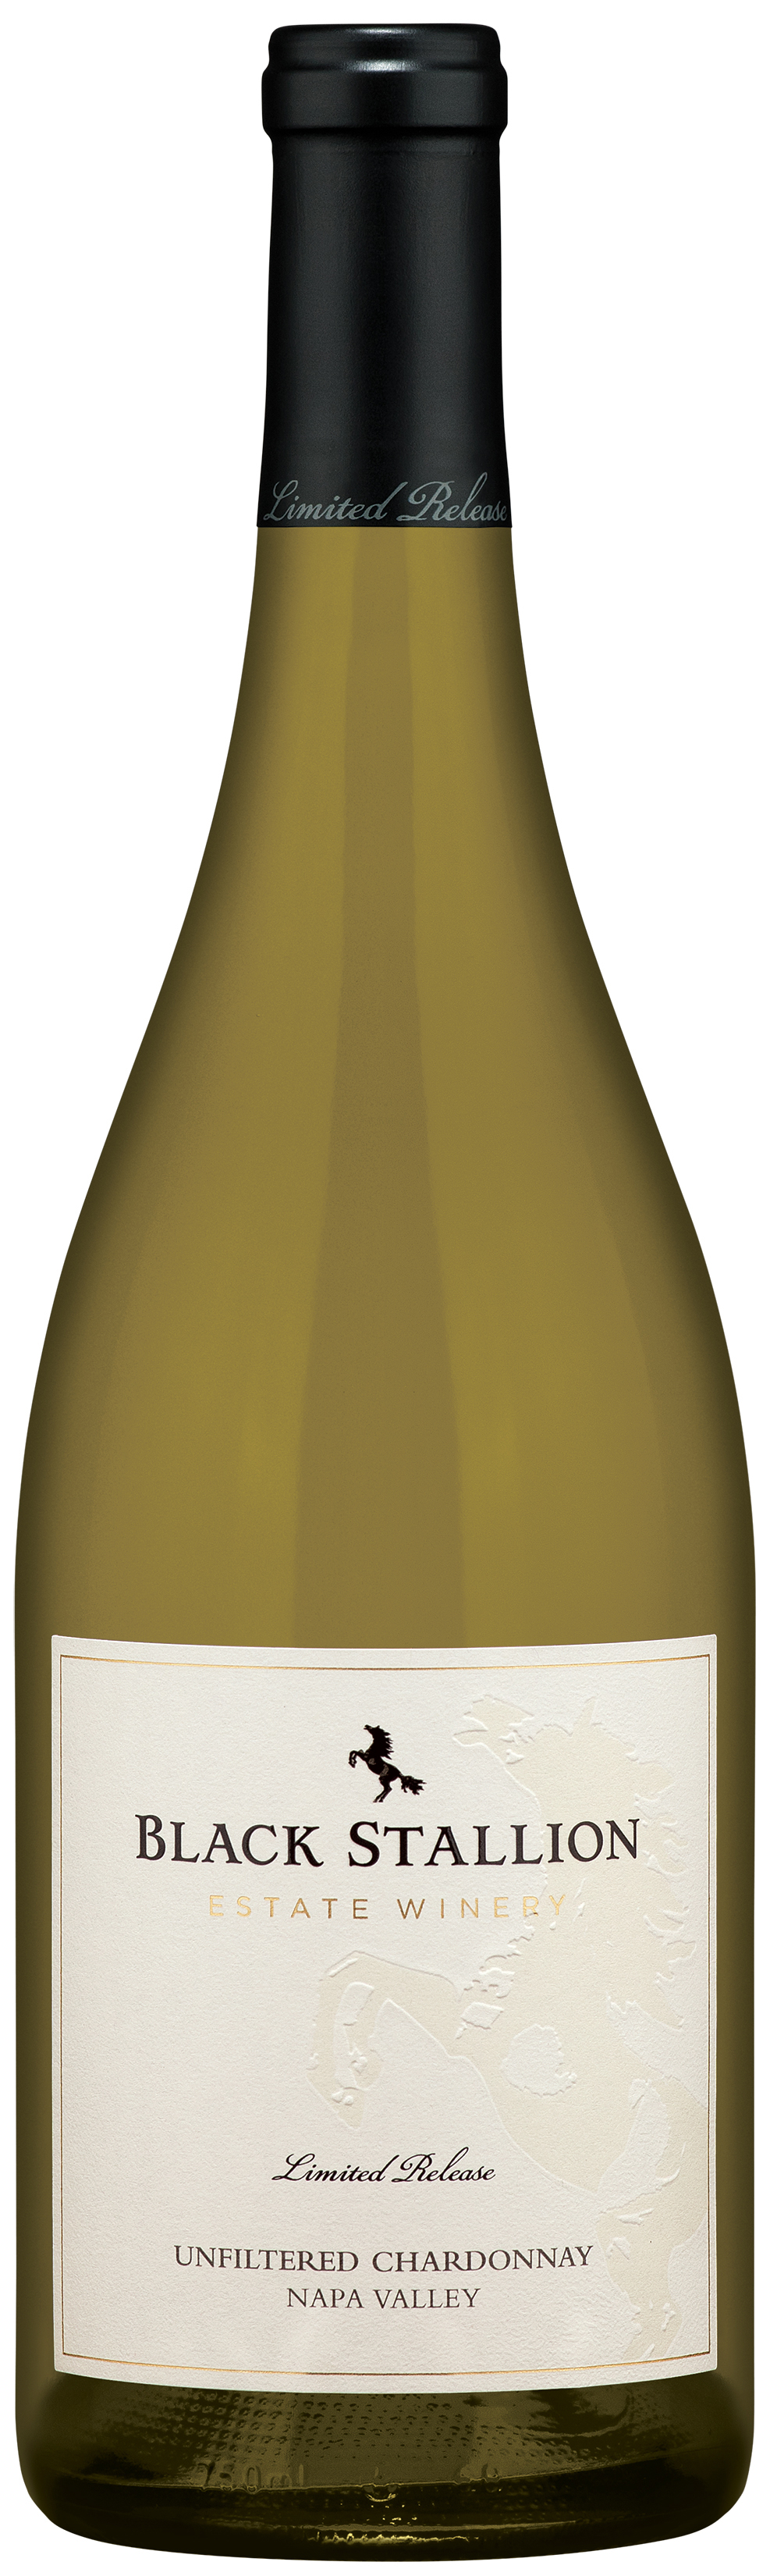 Product Image for 2018 Limited Release Napa Valley Unfiltered Chardonnay